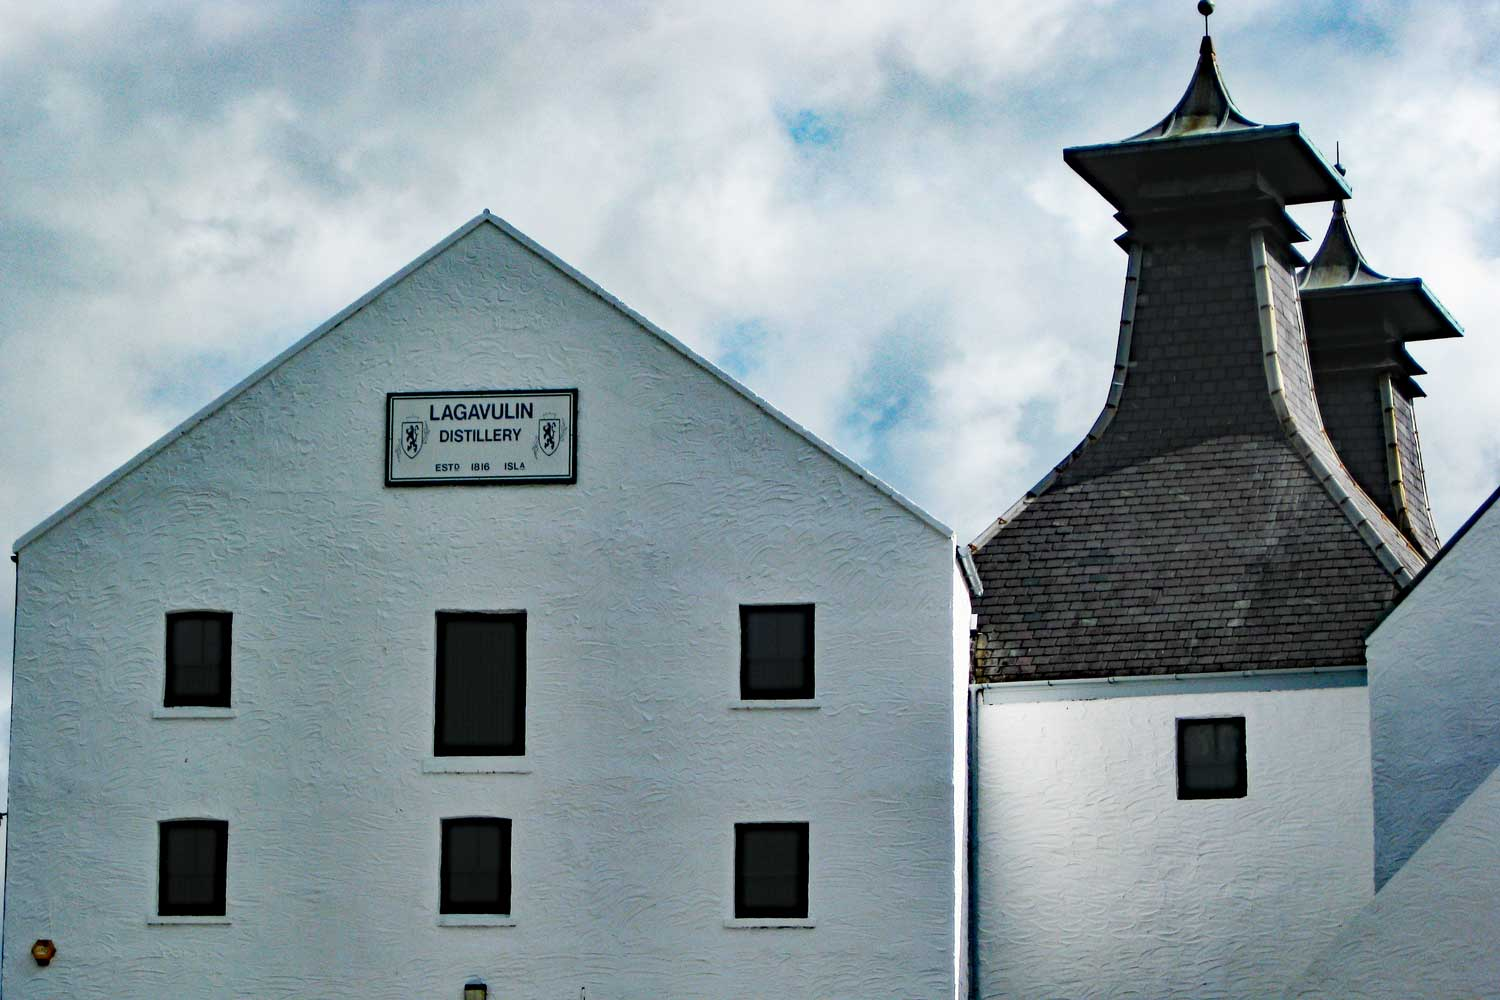 Lagavulin Distillery welcomes visitors to Islay